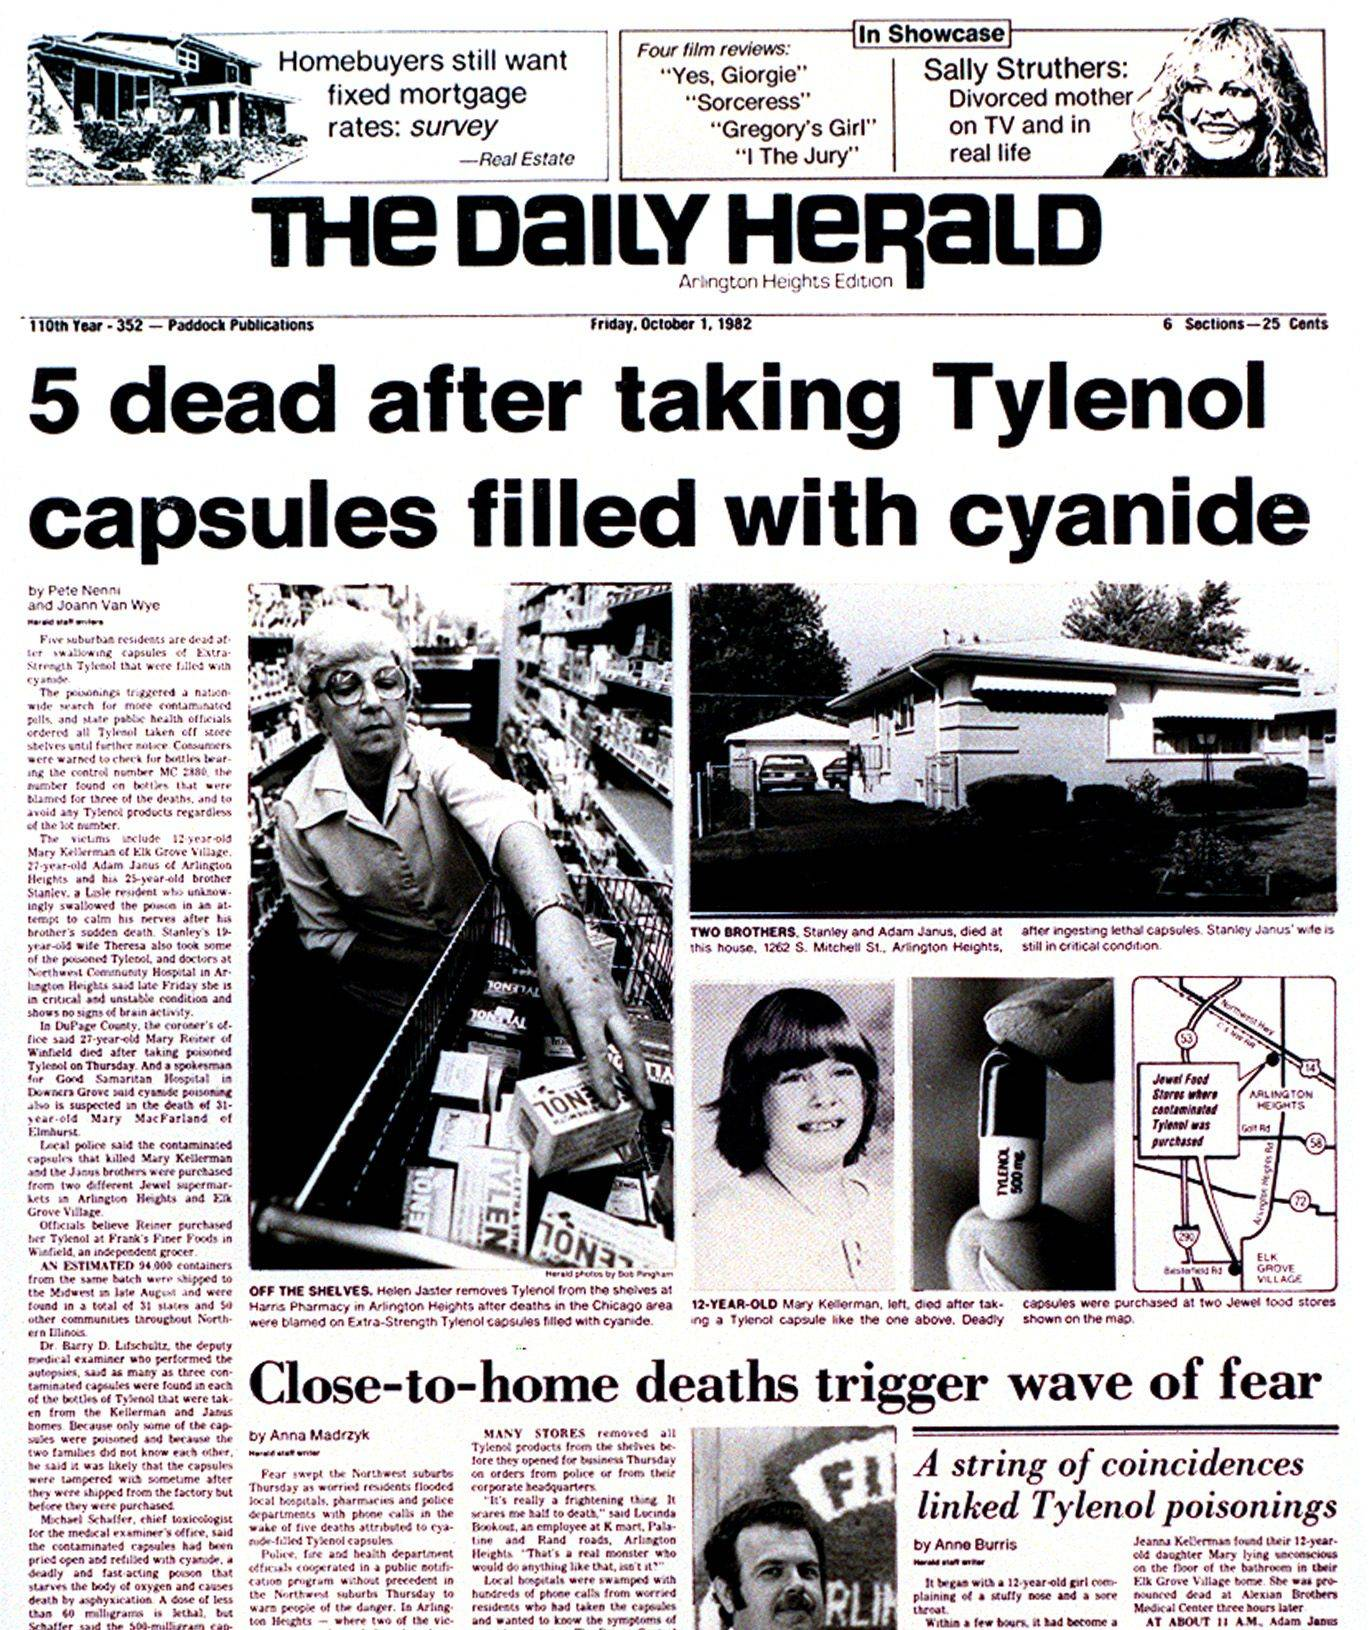 tylenol cyanide crisis The fbi has reopened their investigation into the notorious 1982 chicago tylenol poisonings each of the capsules proved to be laced with potassium cyanide at a.